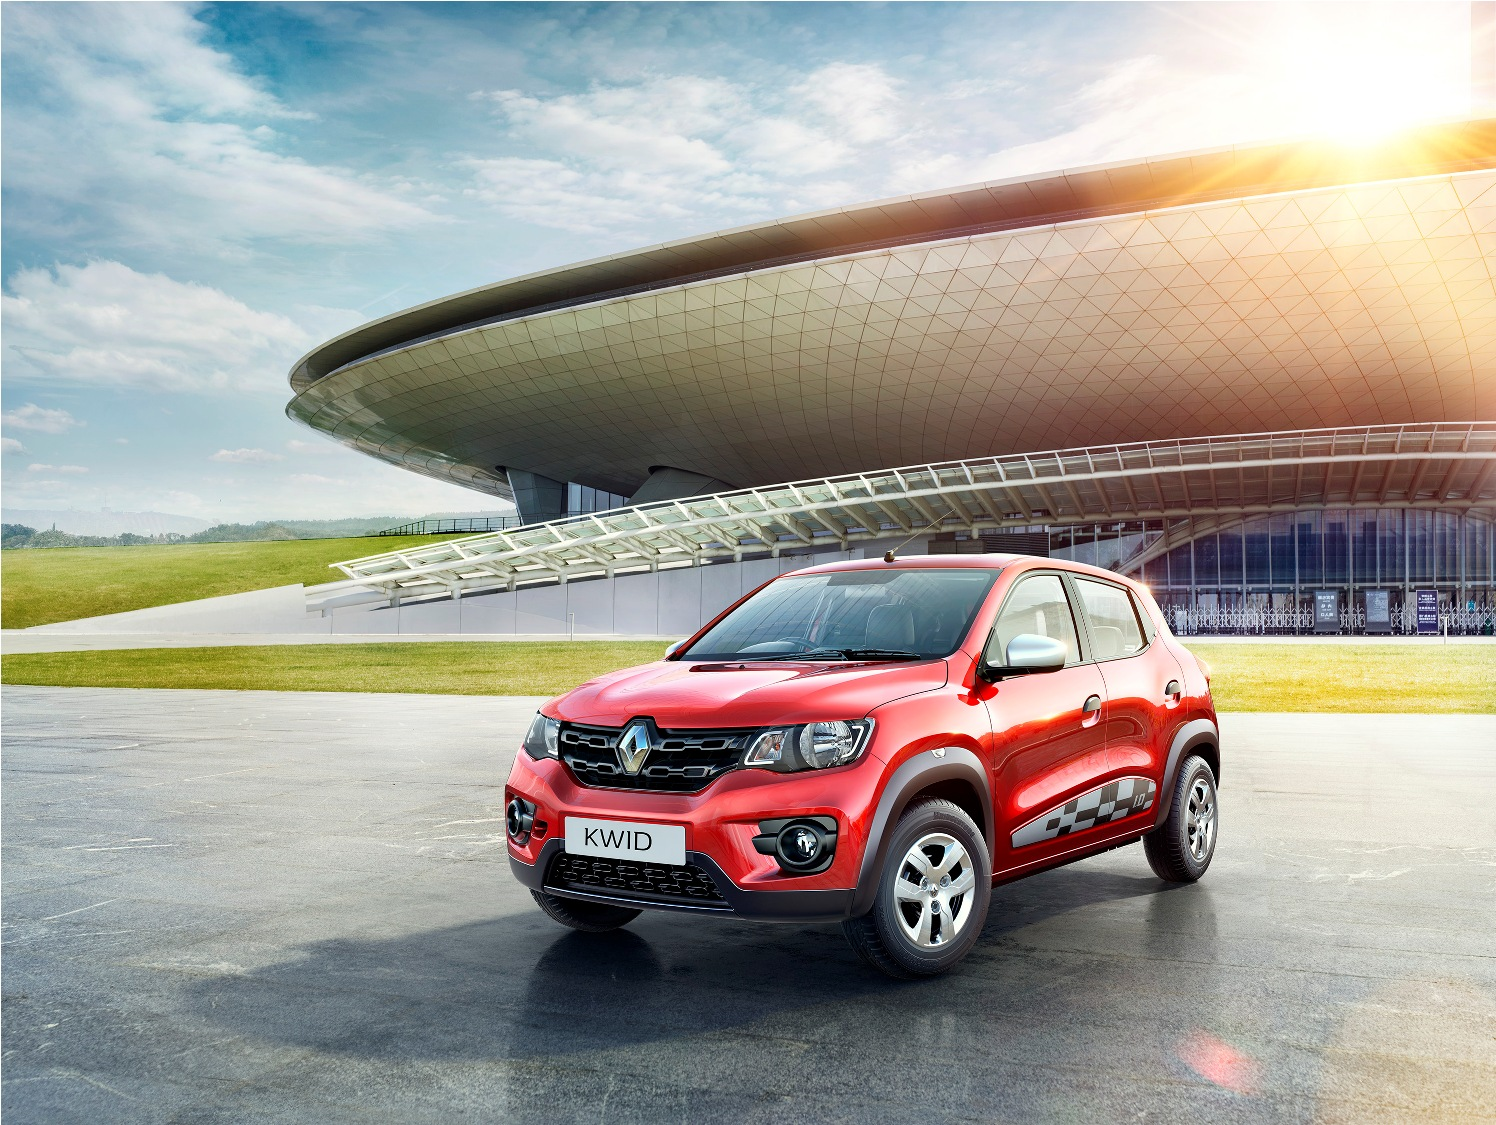 Best car up to 5 lakh rupees in india renault kwid